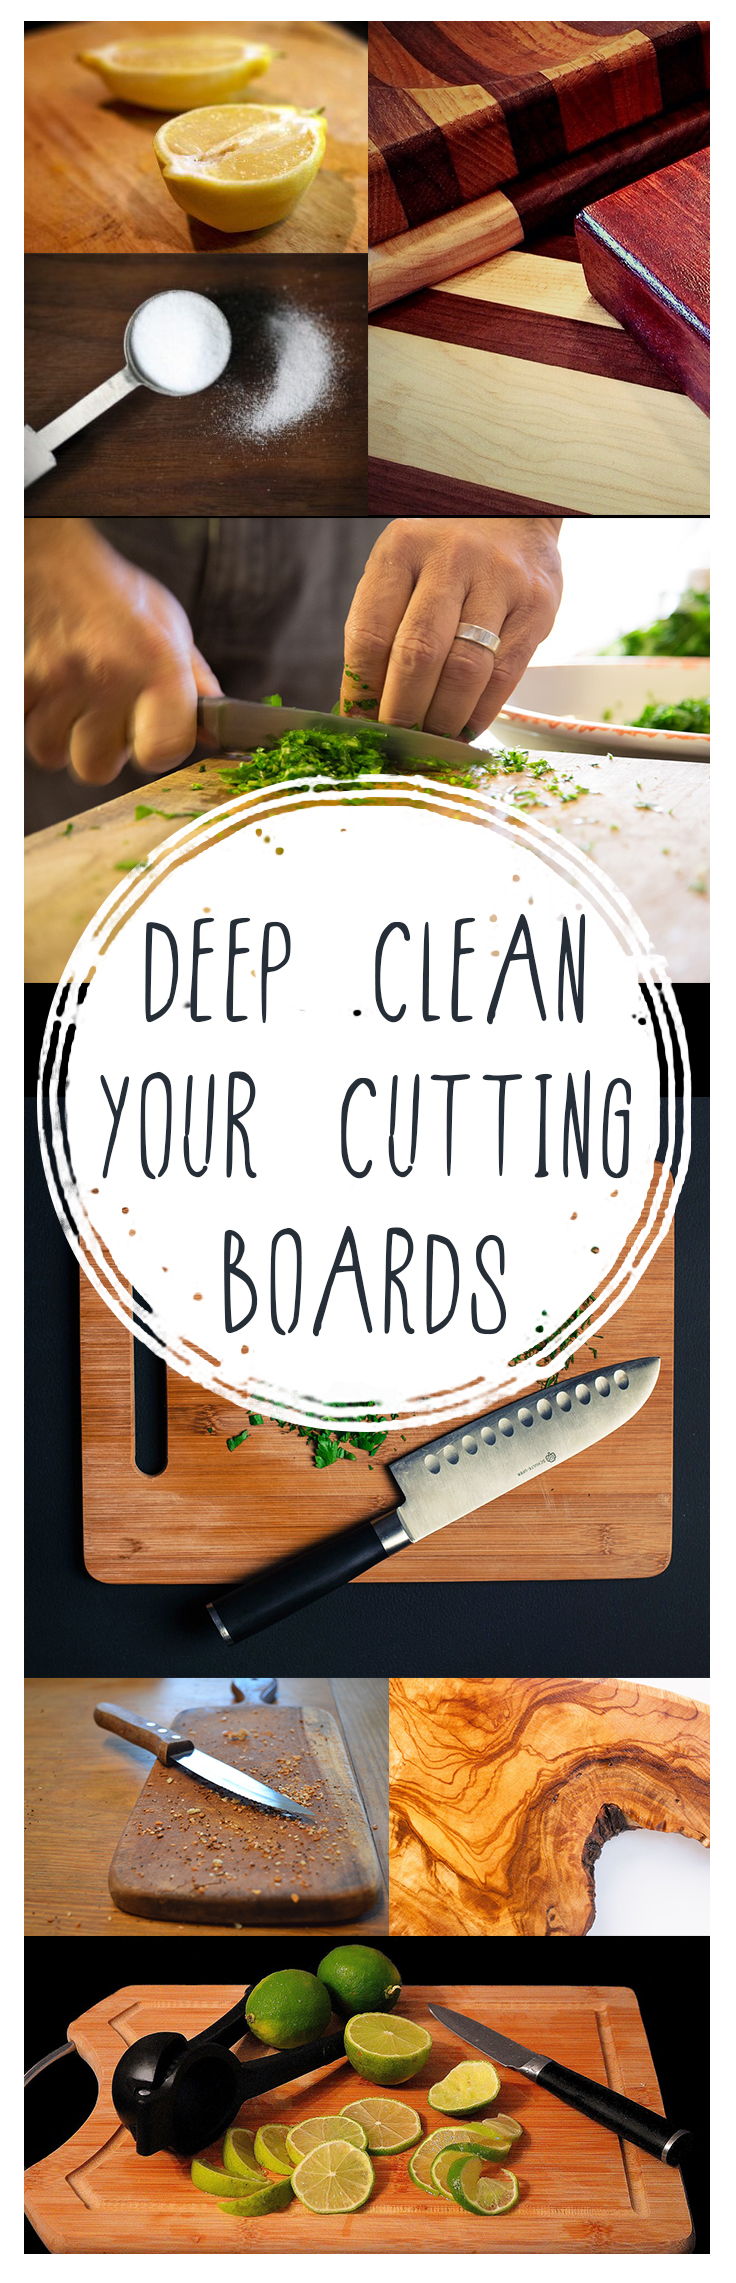 Deep clean your cutting boards, how to clean cutting boards, cutting board cleaning tips, popular pin, cleaning hacks, clean kitchen, dishwashing tips,